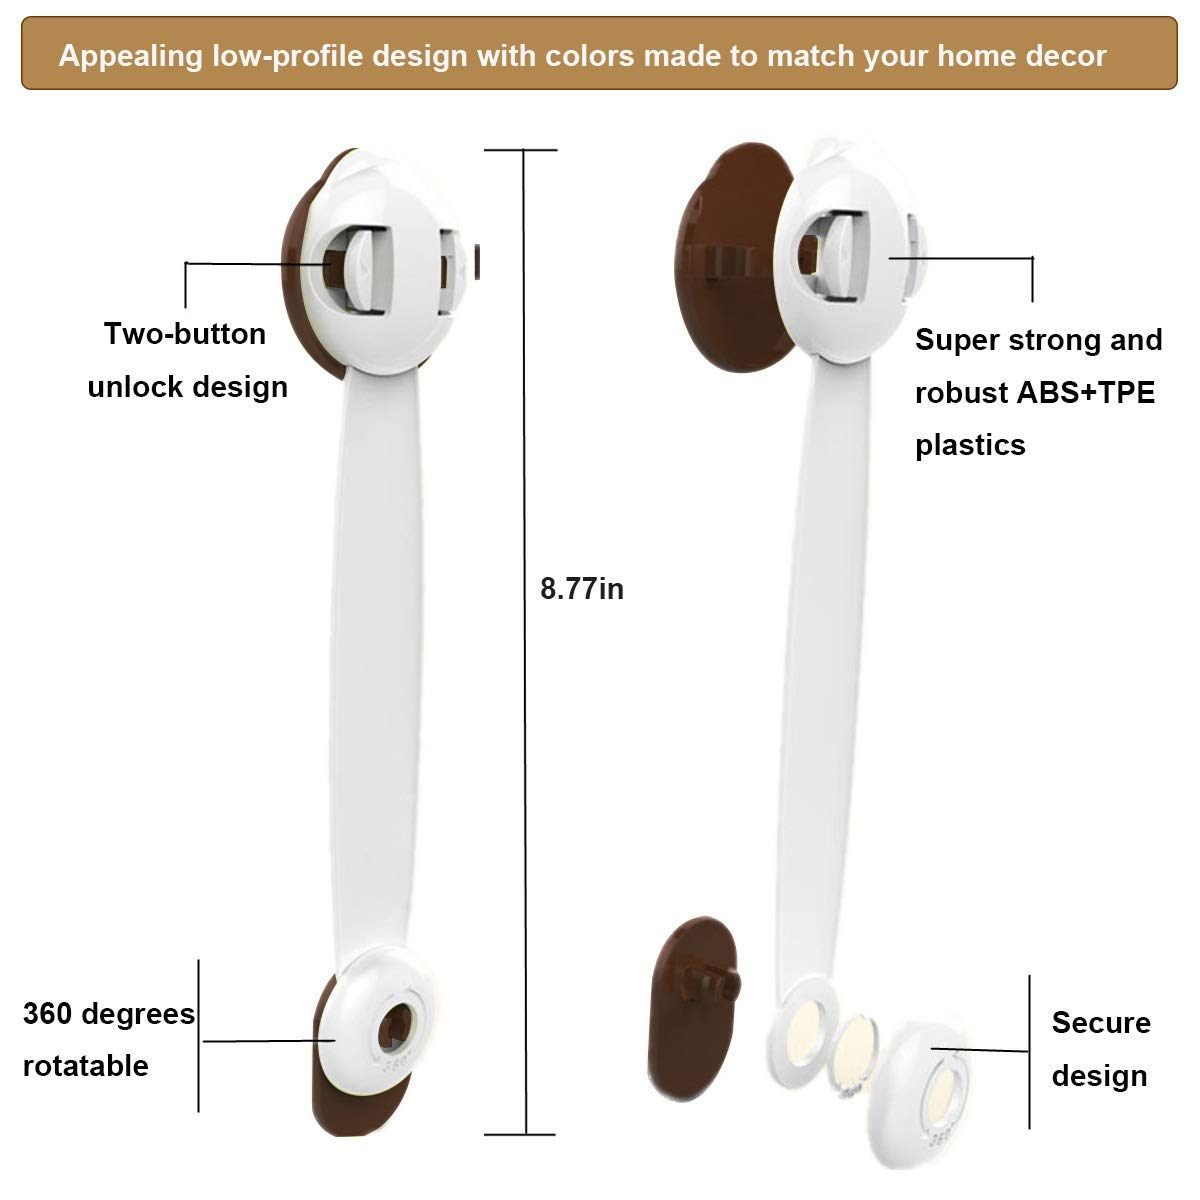 Baby Safety Locks Appliances No Drilling Toilet Seat 3M Adhesive and Latch System Fridge and Oven Drawers Child Proof Cabinets 6-Pack